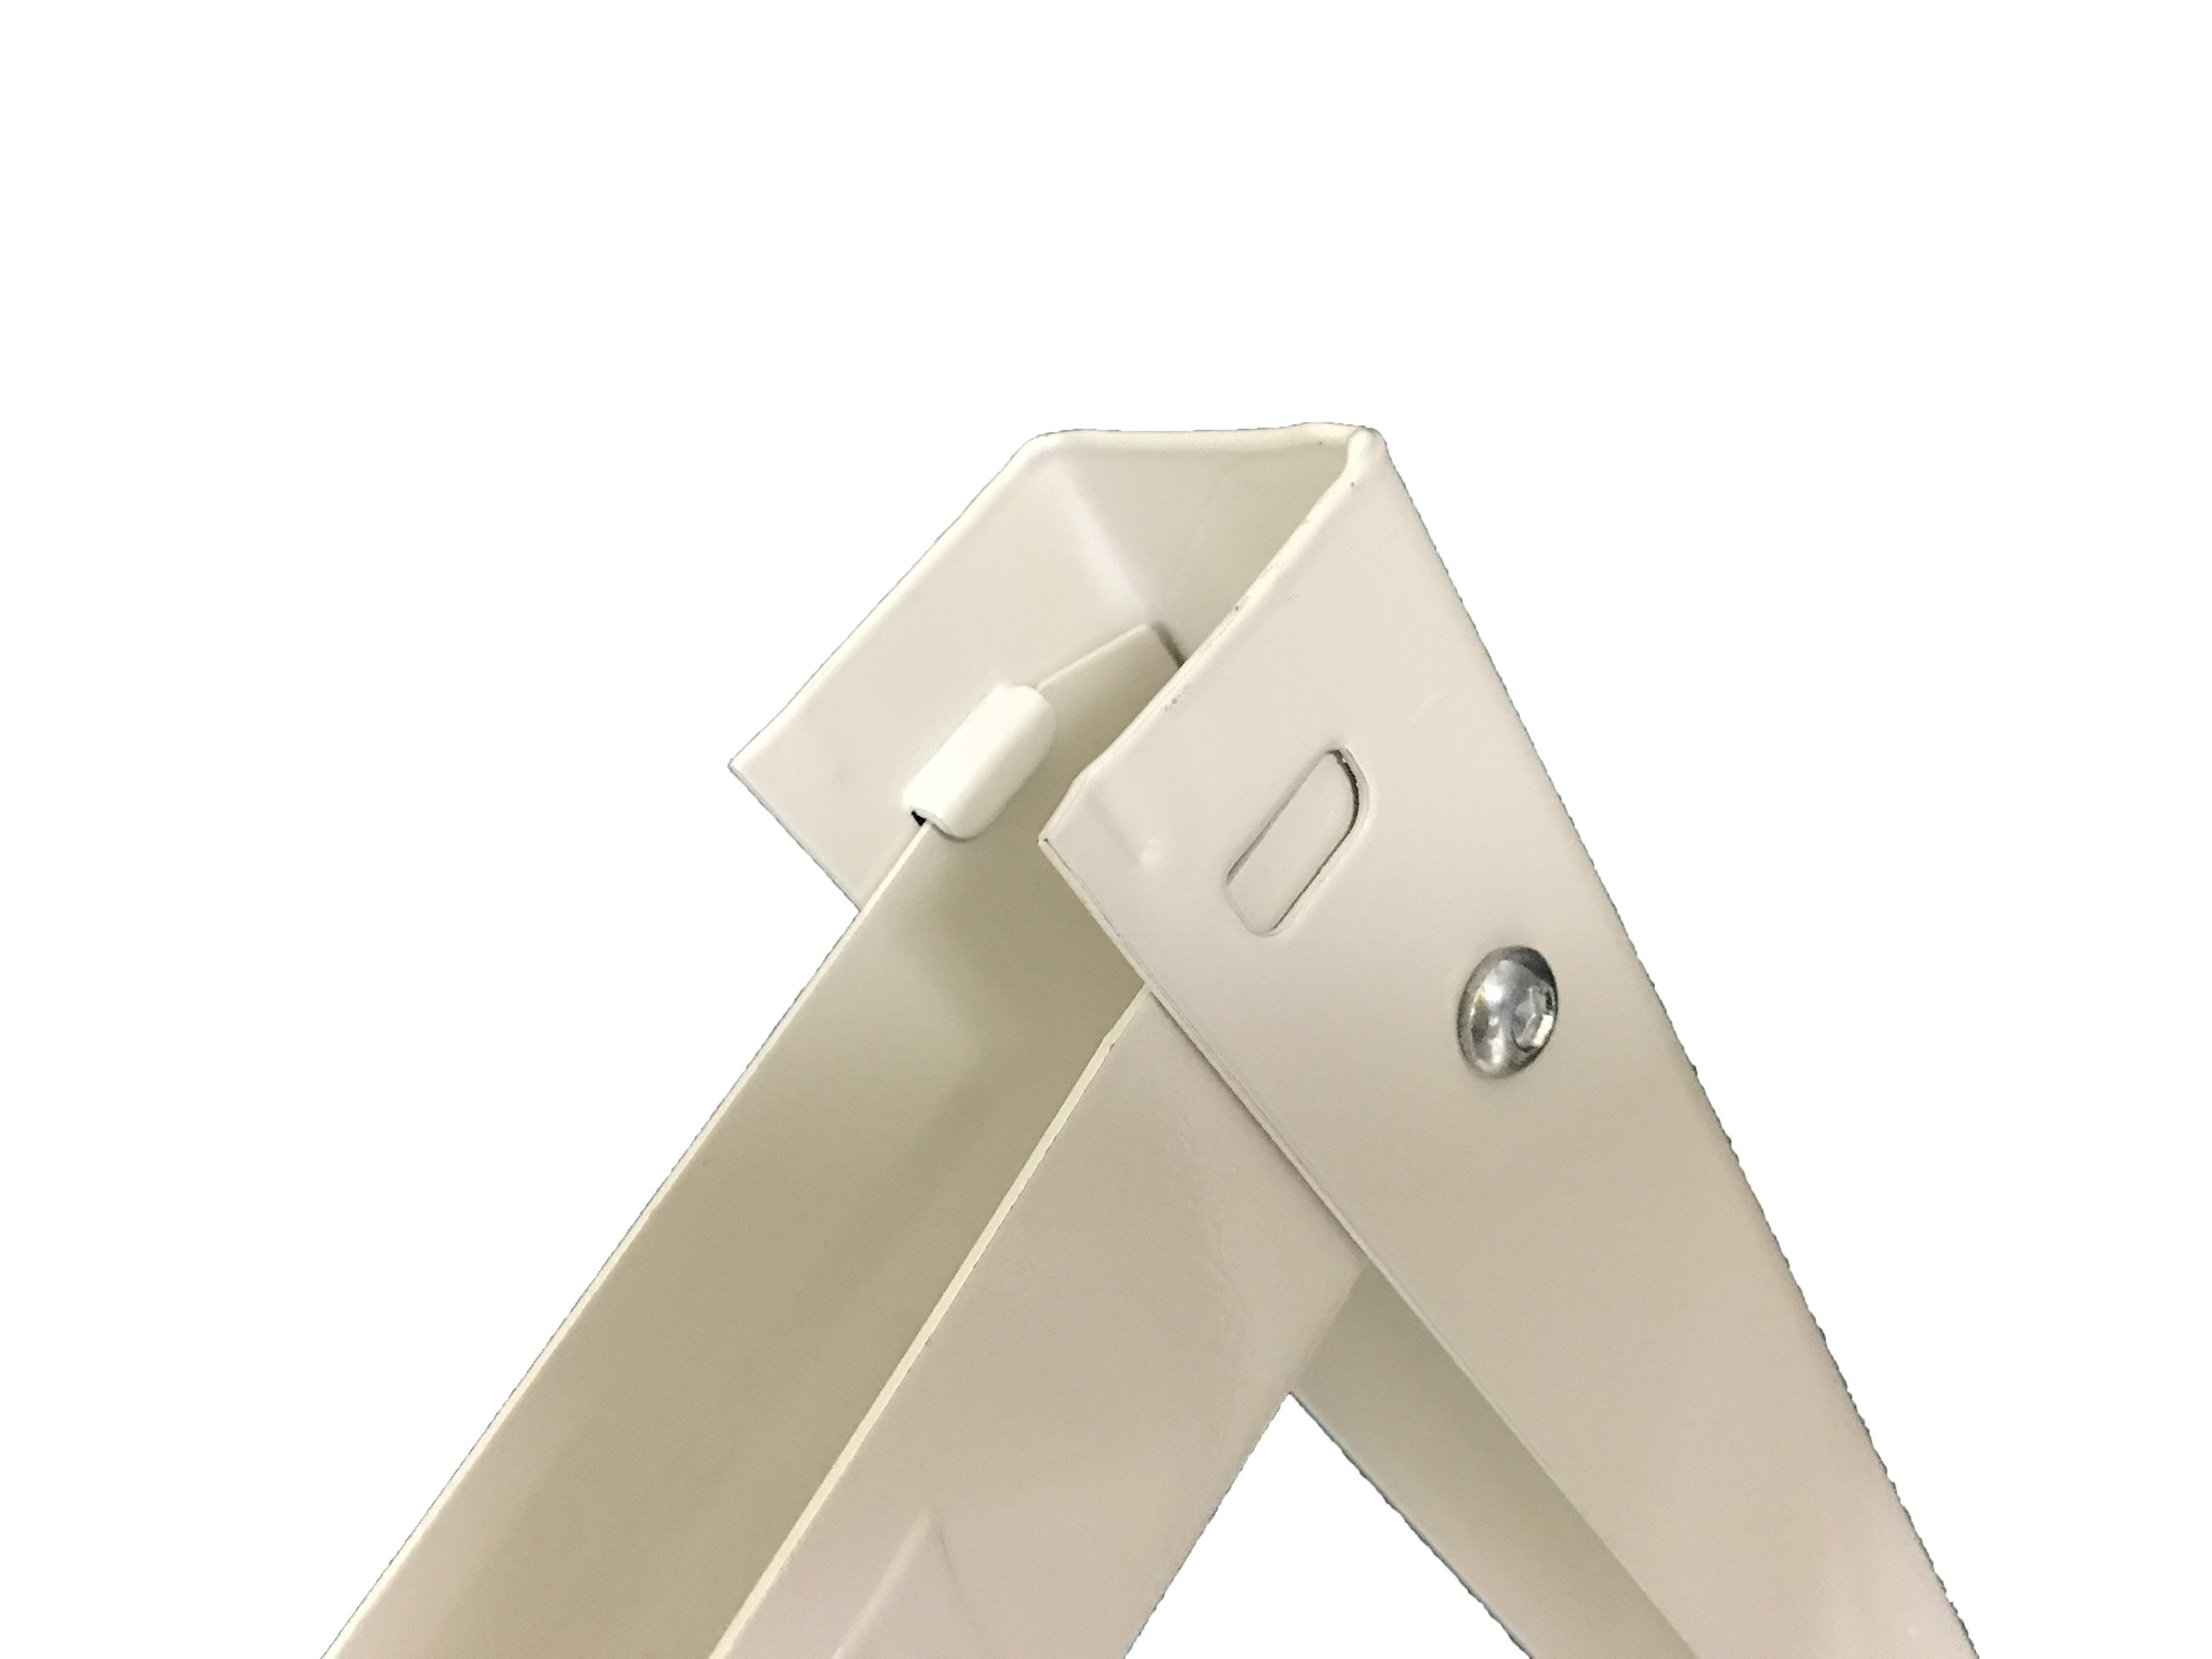 Universal Wall Mounting Pre-Assembled Bracket for Mini Split up to 36,000 BTU